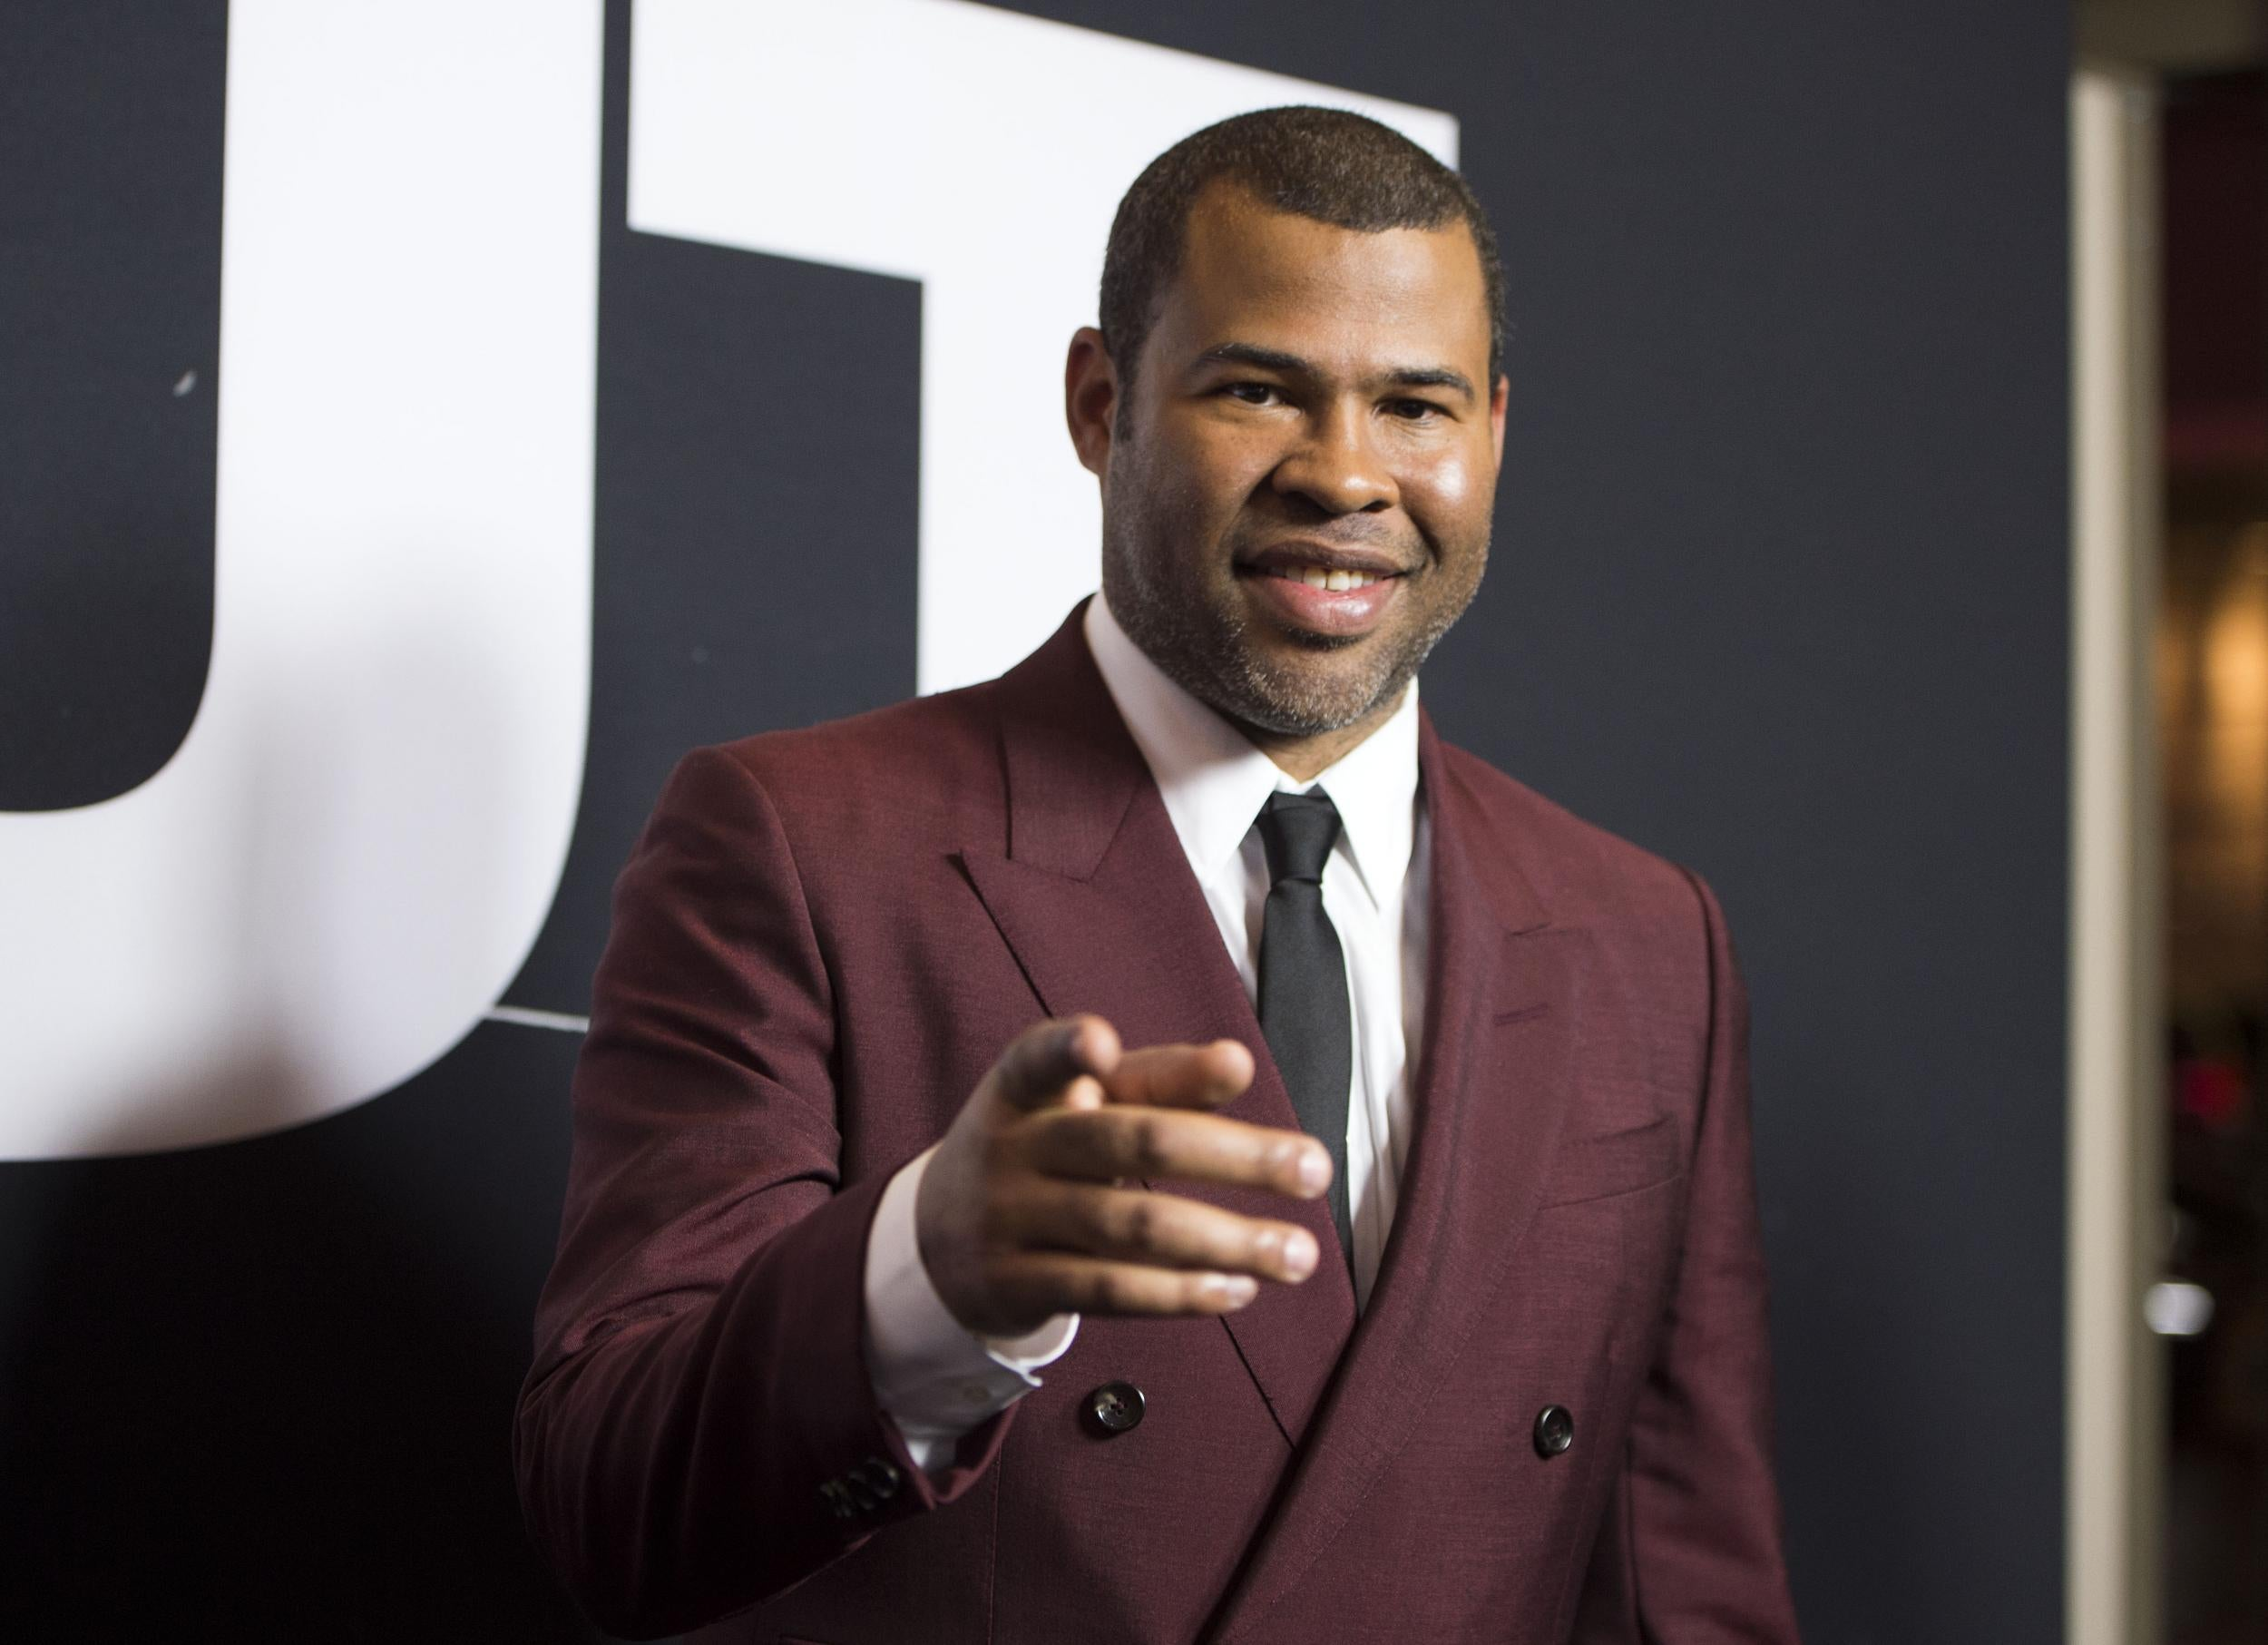 an analysis of get out a film by jordan peele